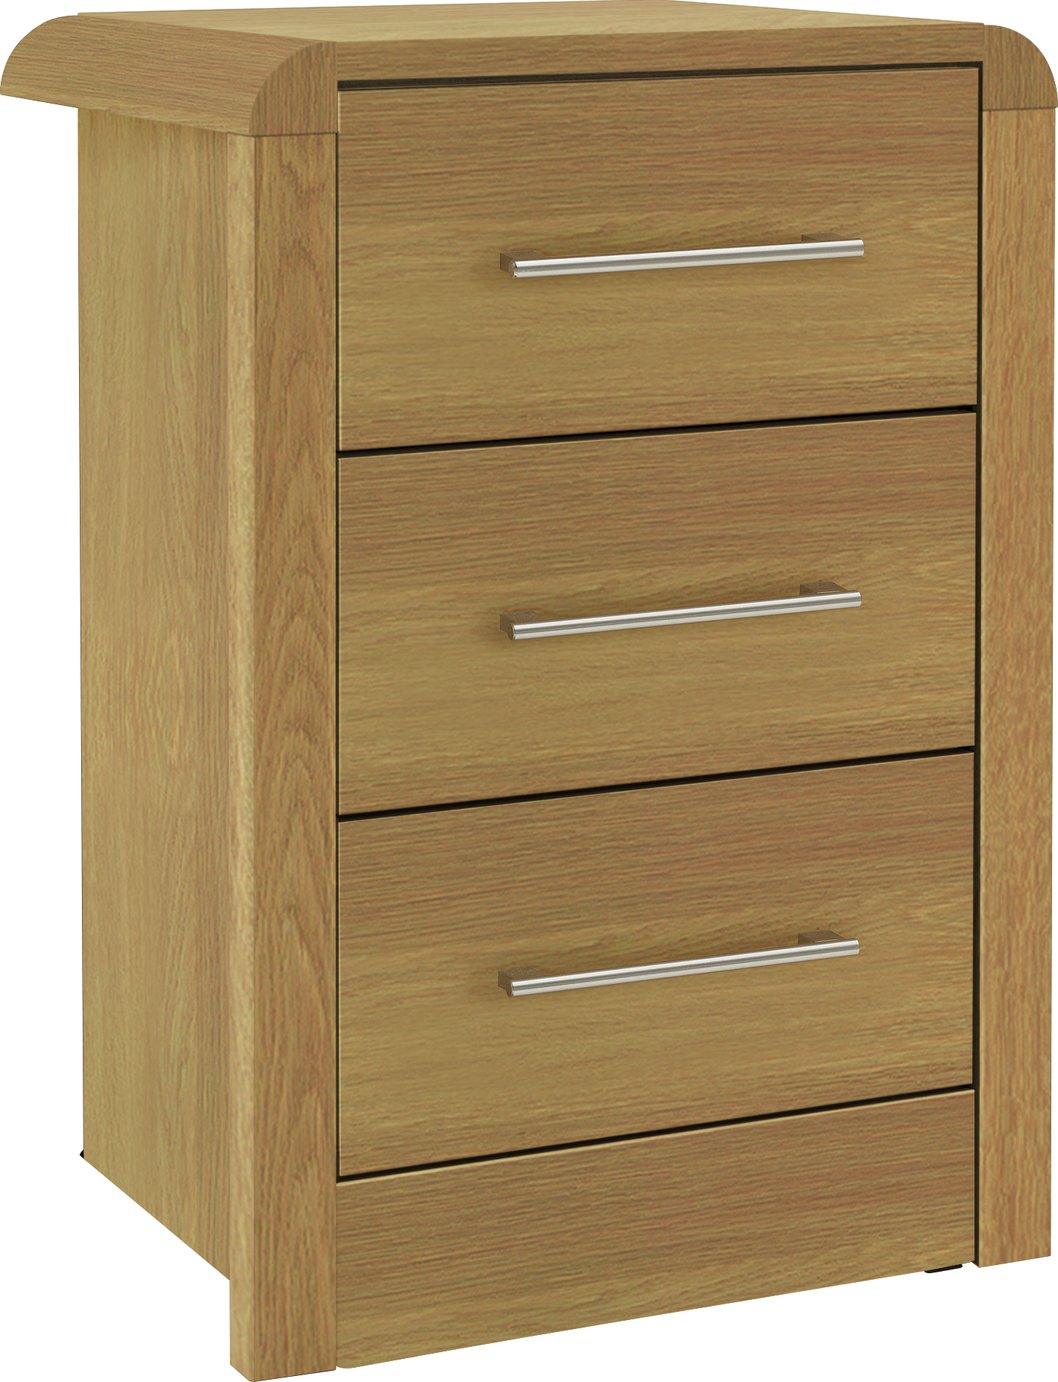 Chest of drawers and bedside table set - More Details On Heart Of House Elford 3 Drawer Bedside Chest Oak Effect